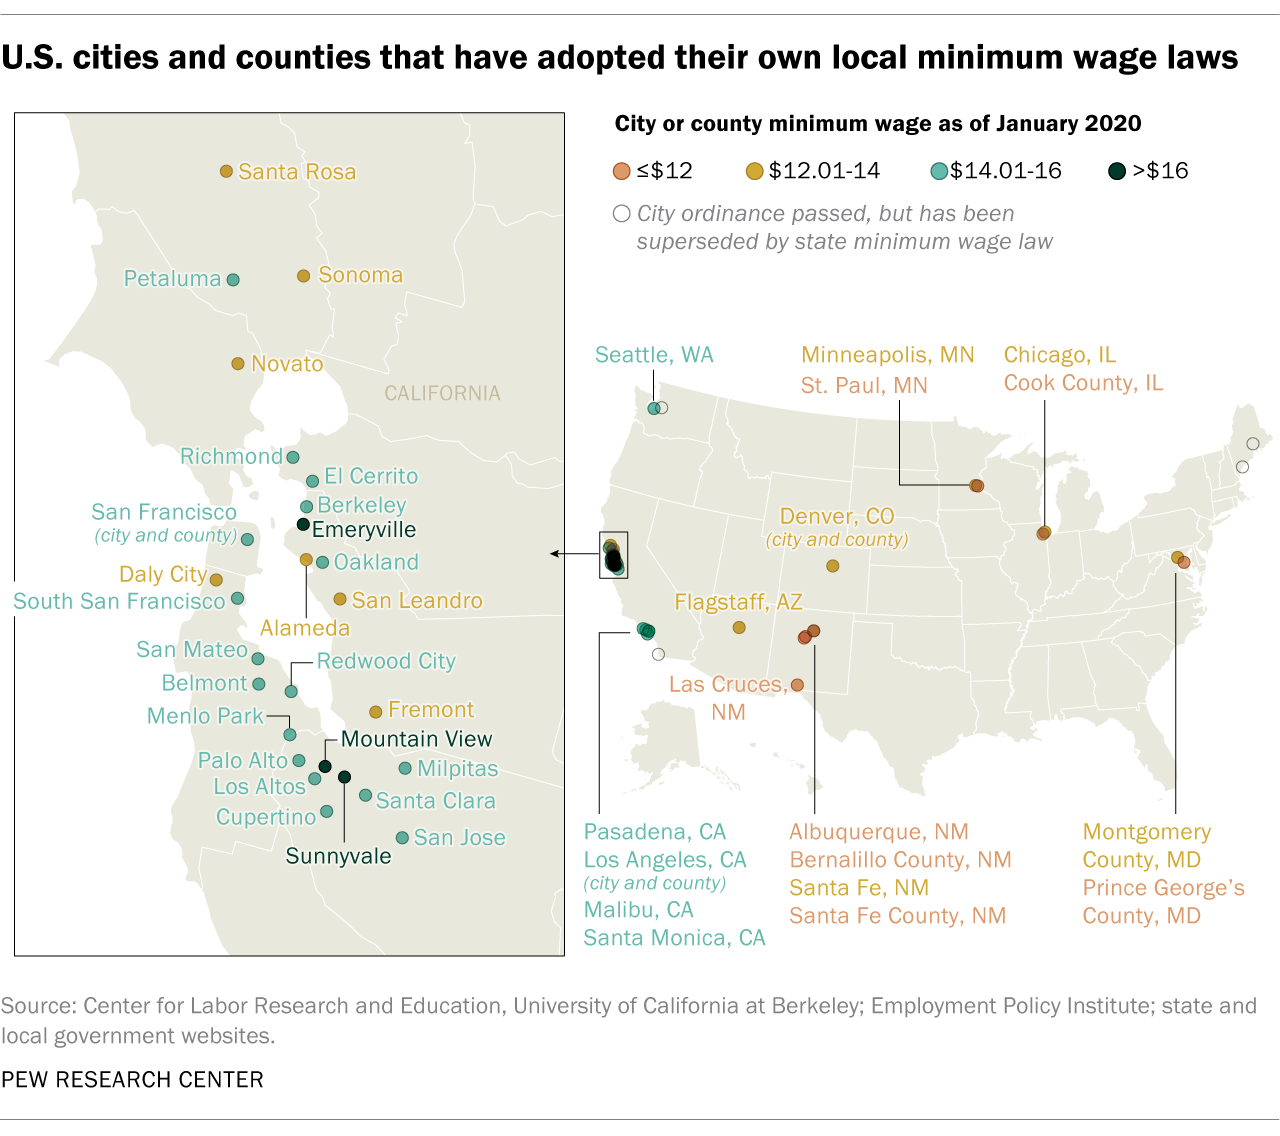 U.S. cities and counties that have adopted their own local minimum wage laws